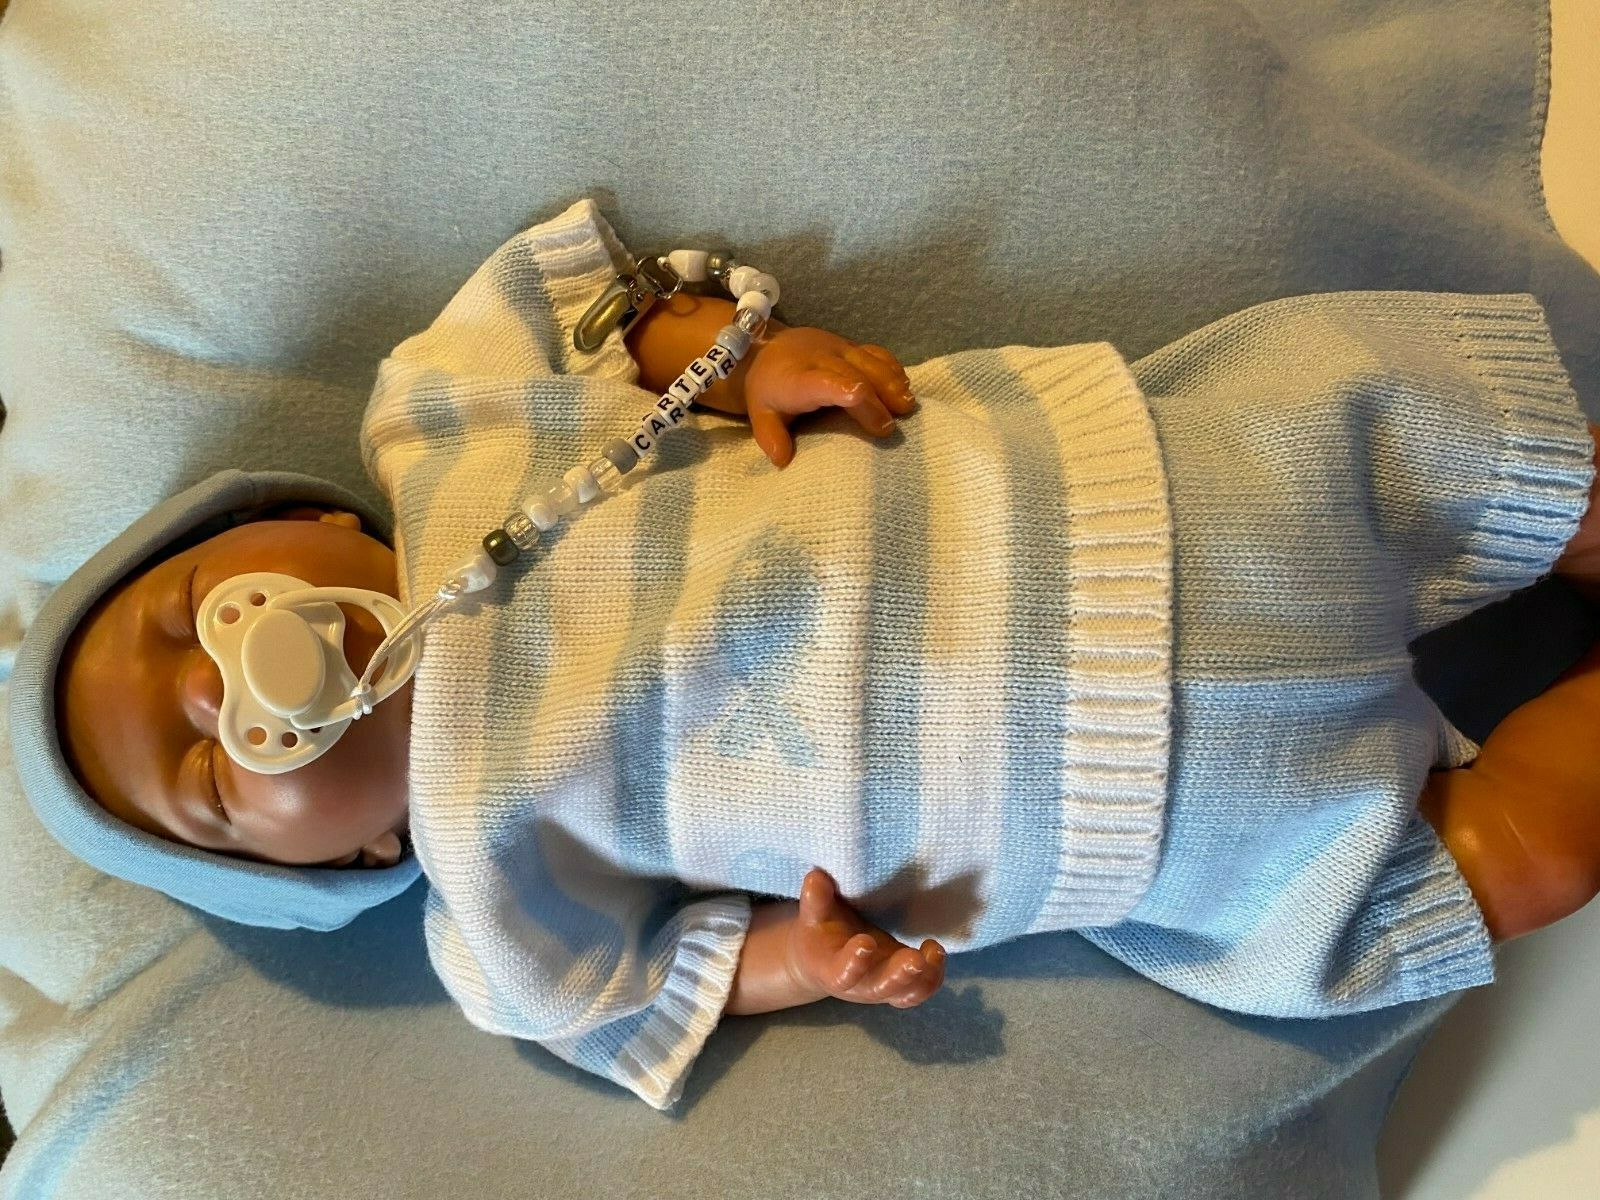 Reborn baby boy sunbeambabies 18 inch great condition. accessories included